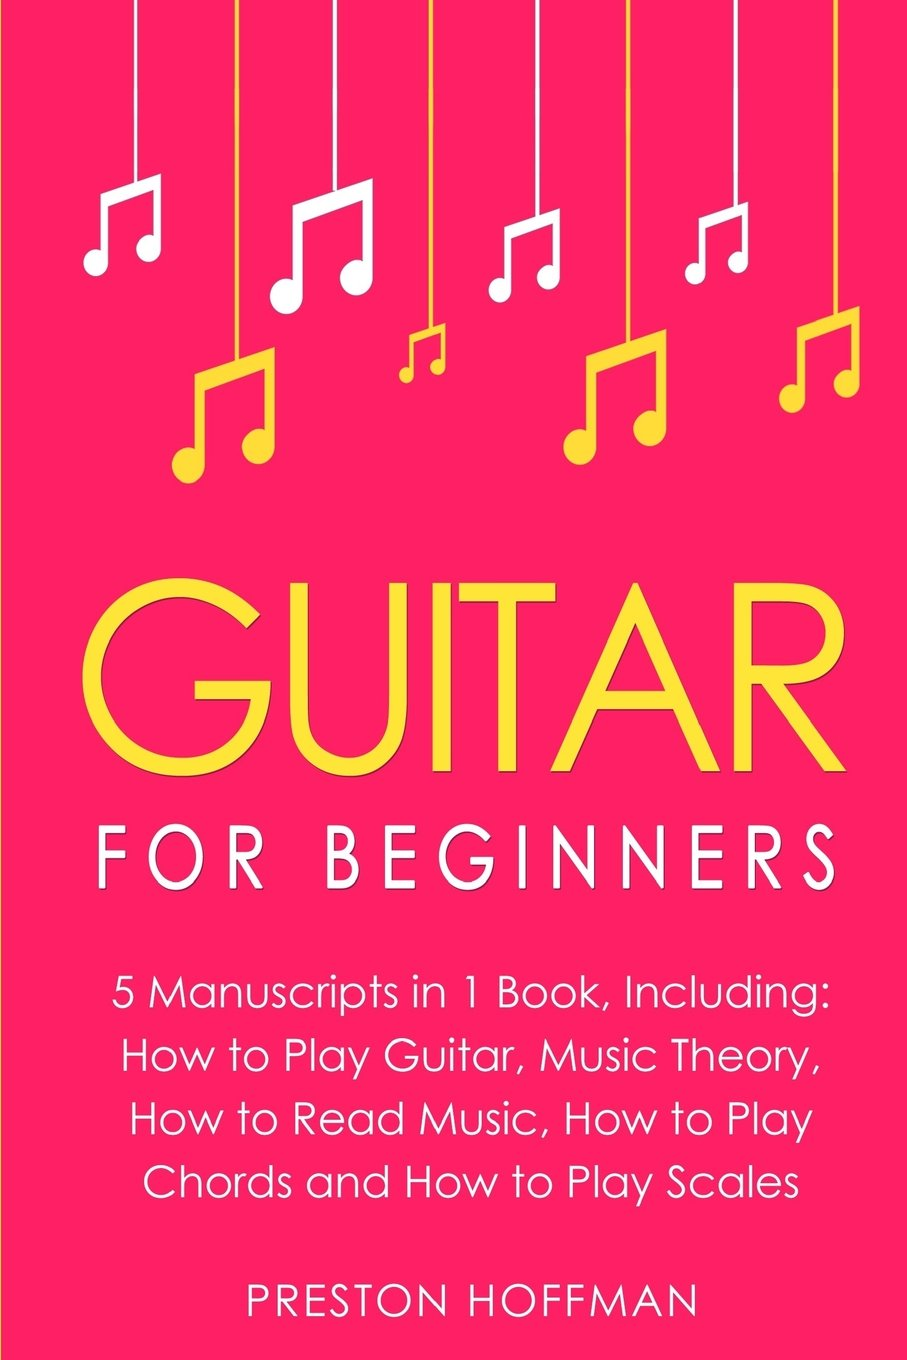 Guitar For Beginners Bundle The Only 5 Books You Need To Learn